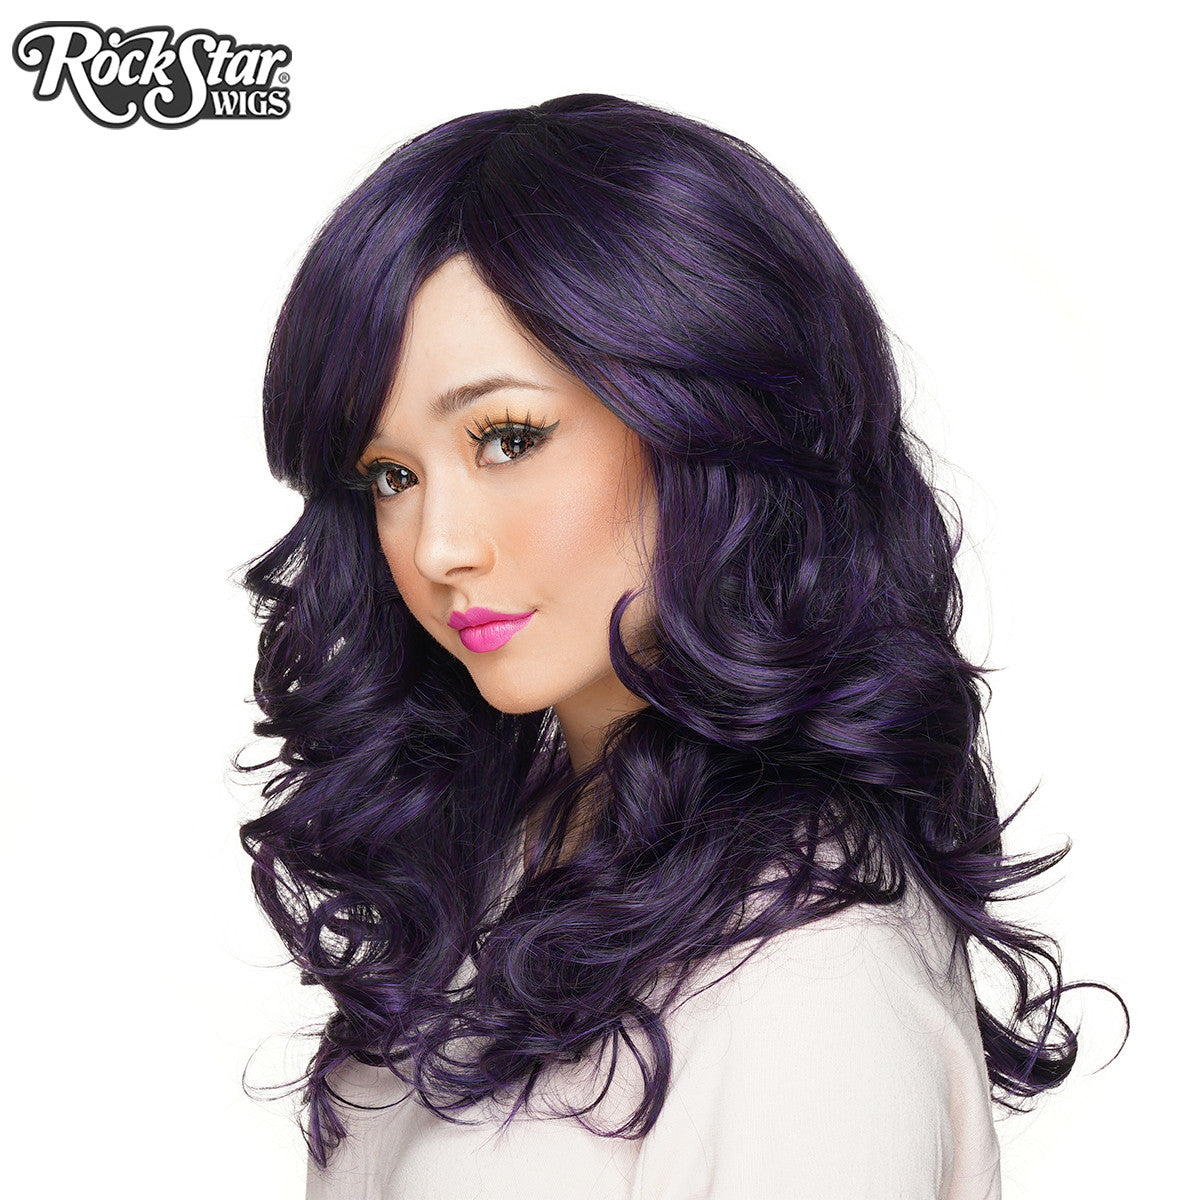 RockStar Wigs® <br> Farrah™ Collection - Vixen -00177